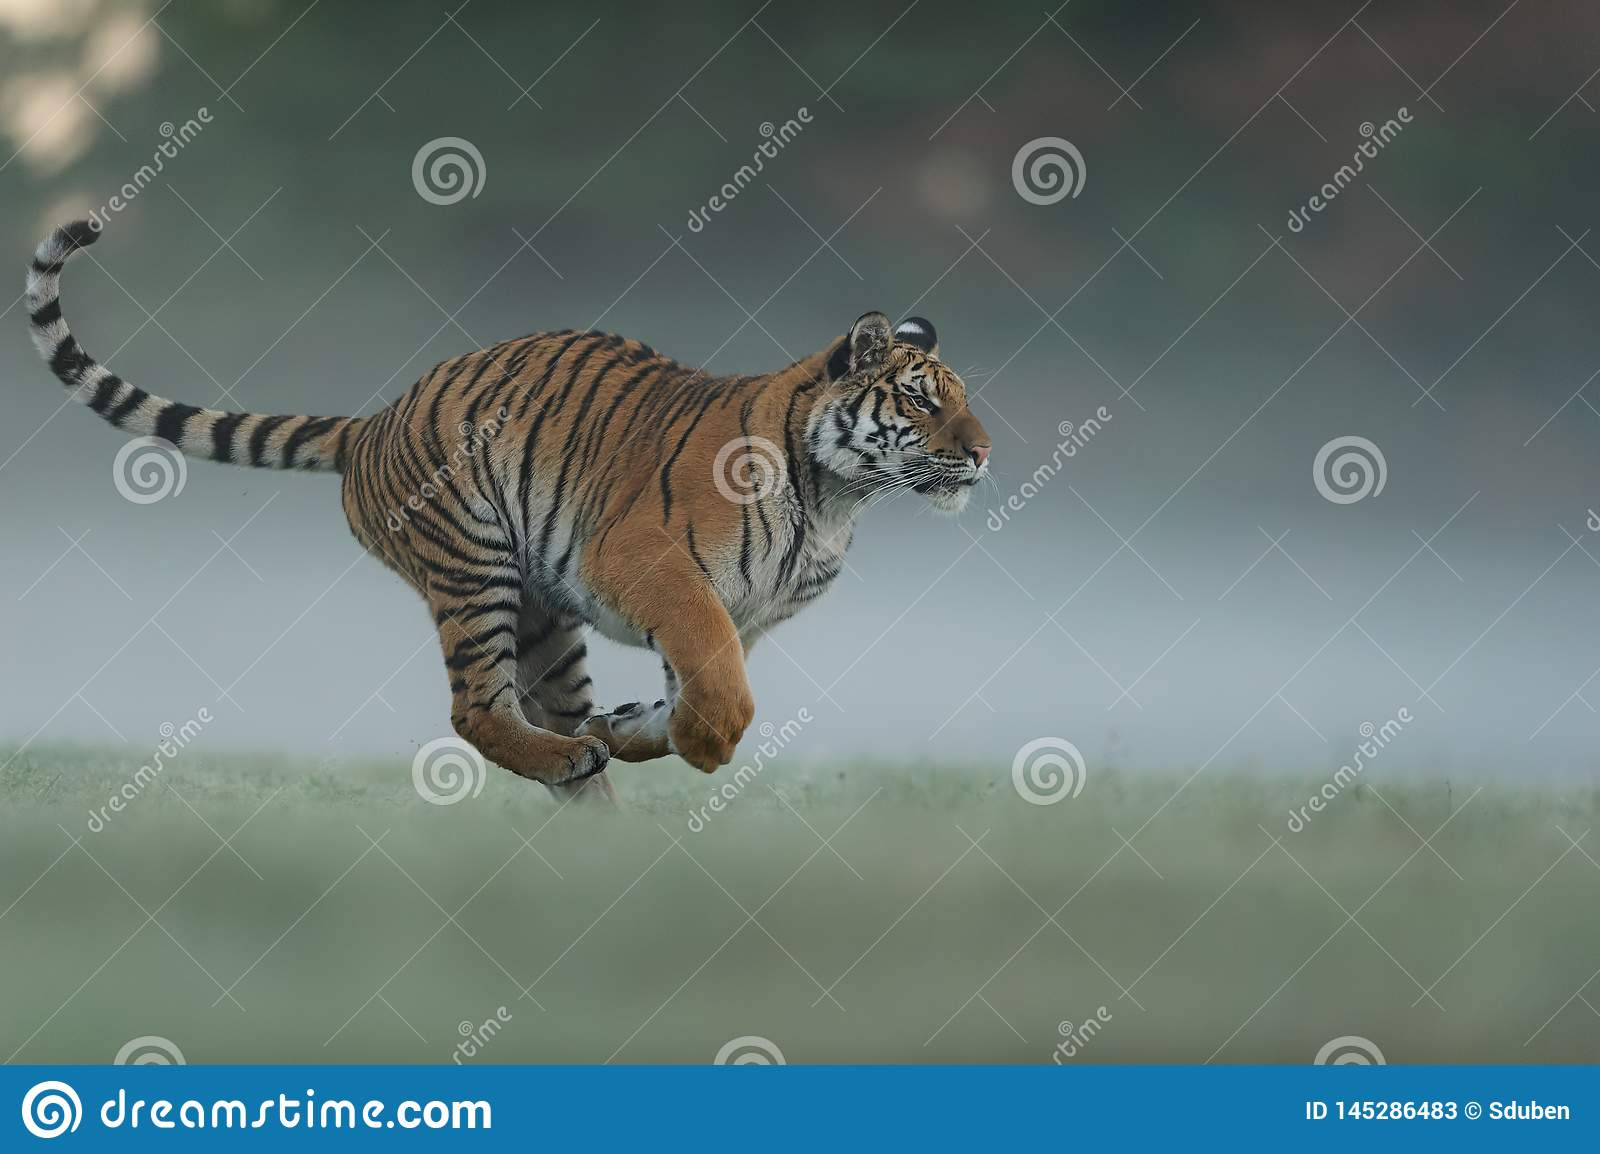 Running tiger on morning green field. Side view to dangerous animal. Tiger profil in agressive run. Siberian tiger